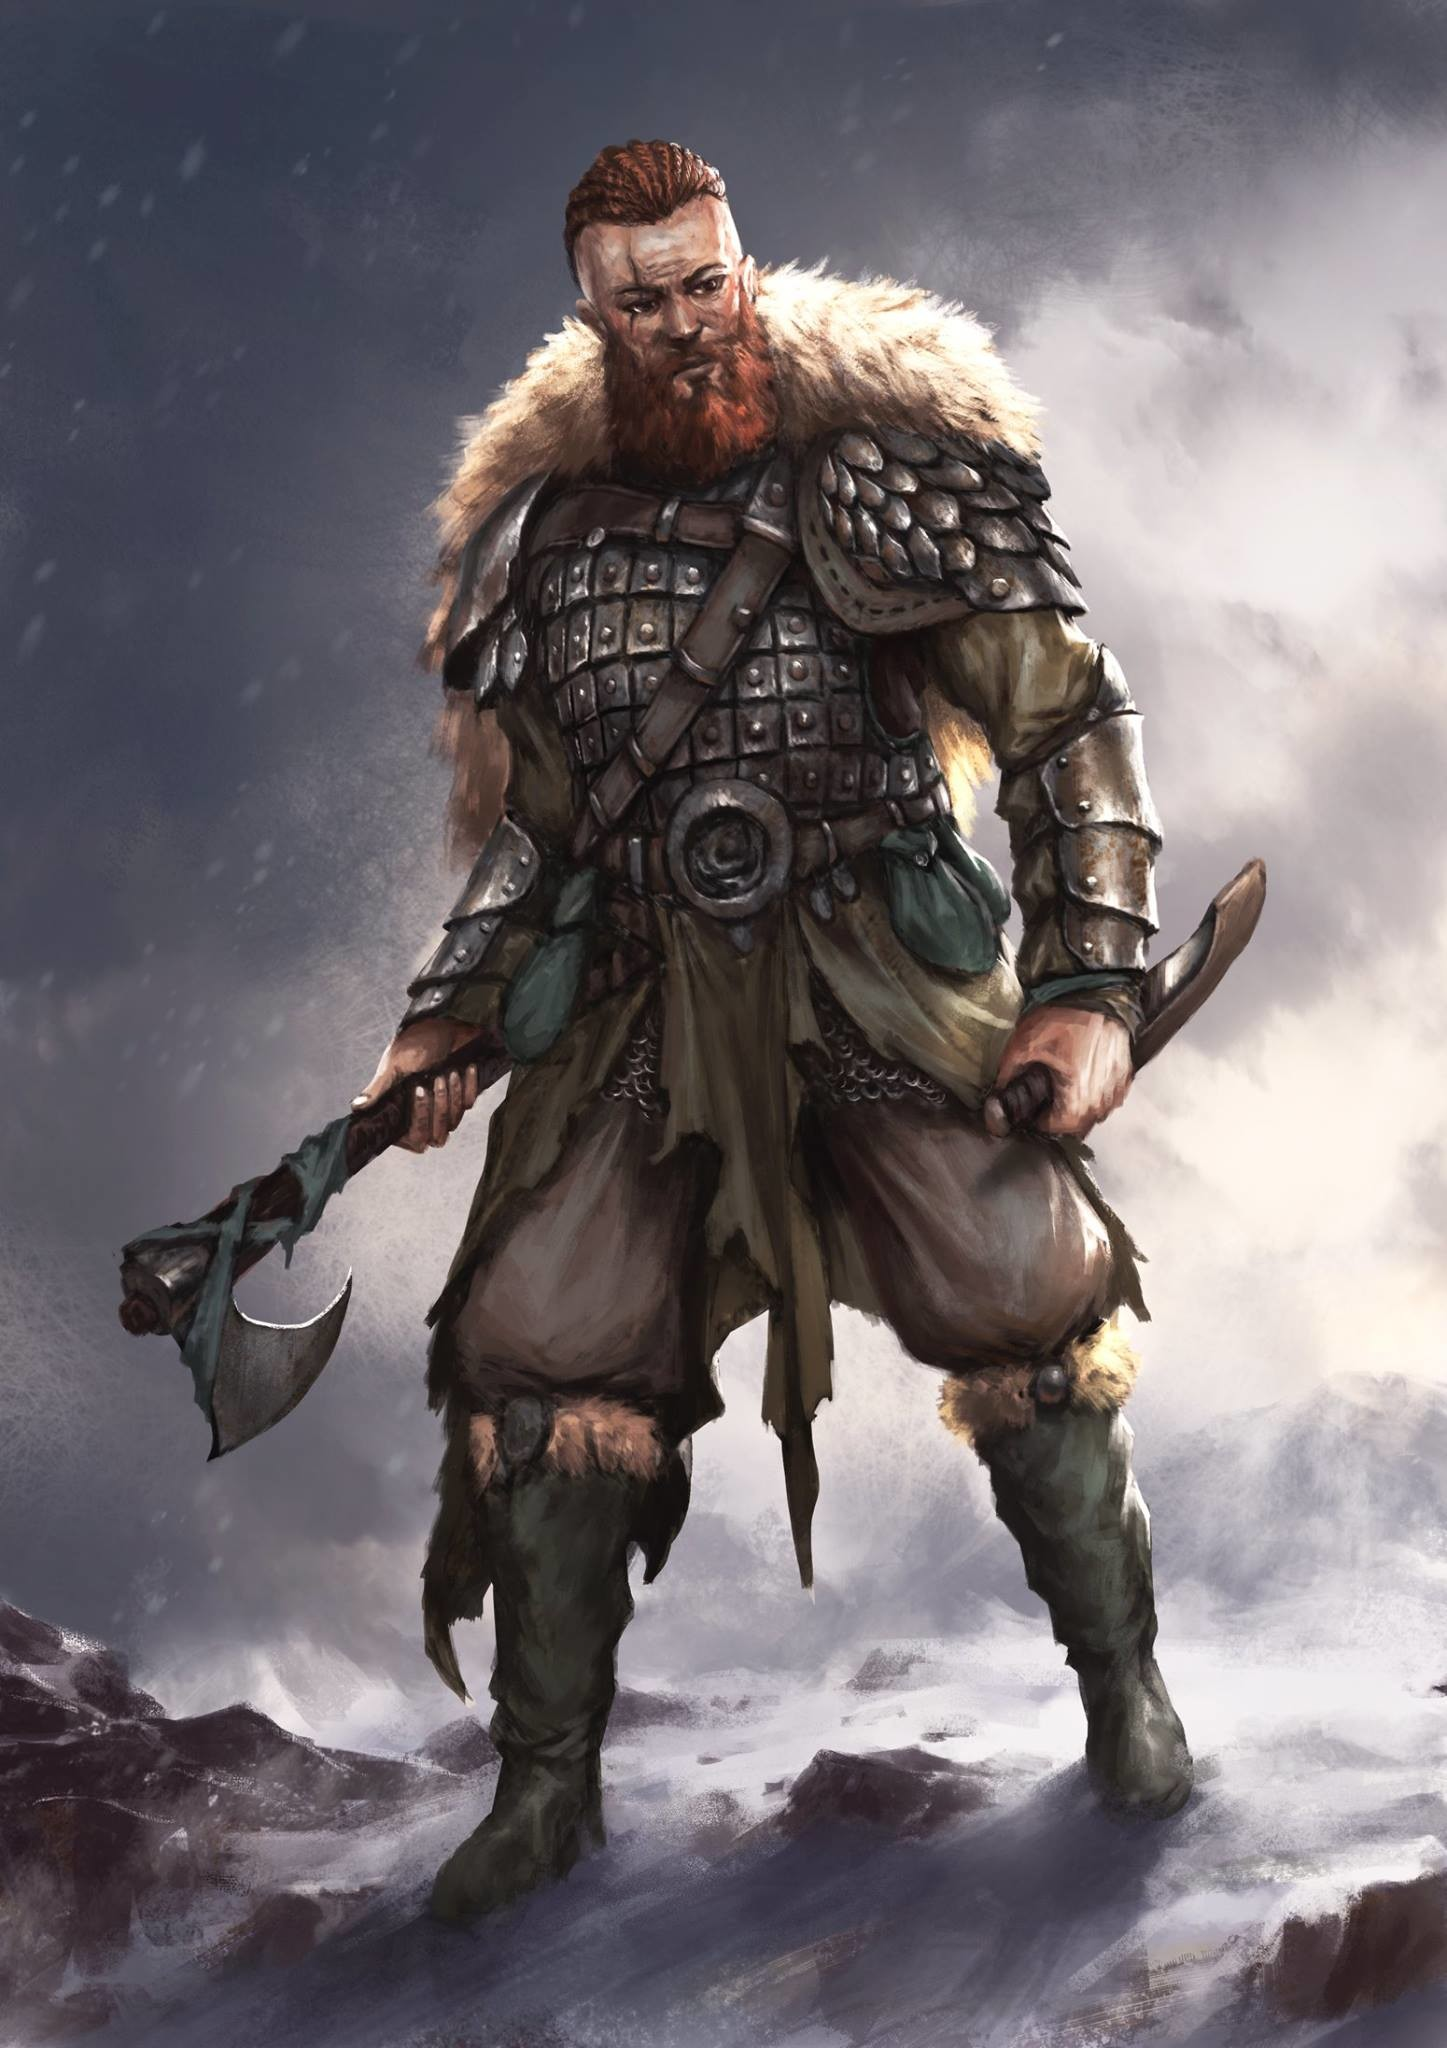 ArtStation - Viking, Plutus Su